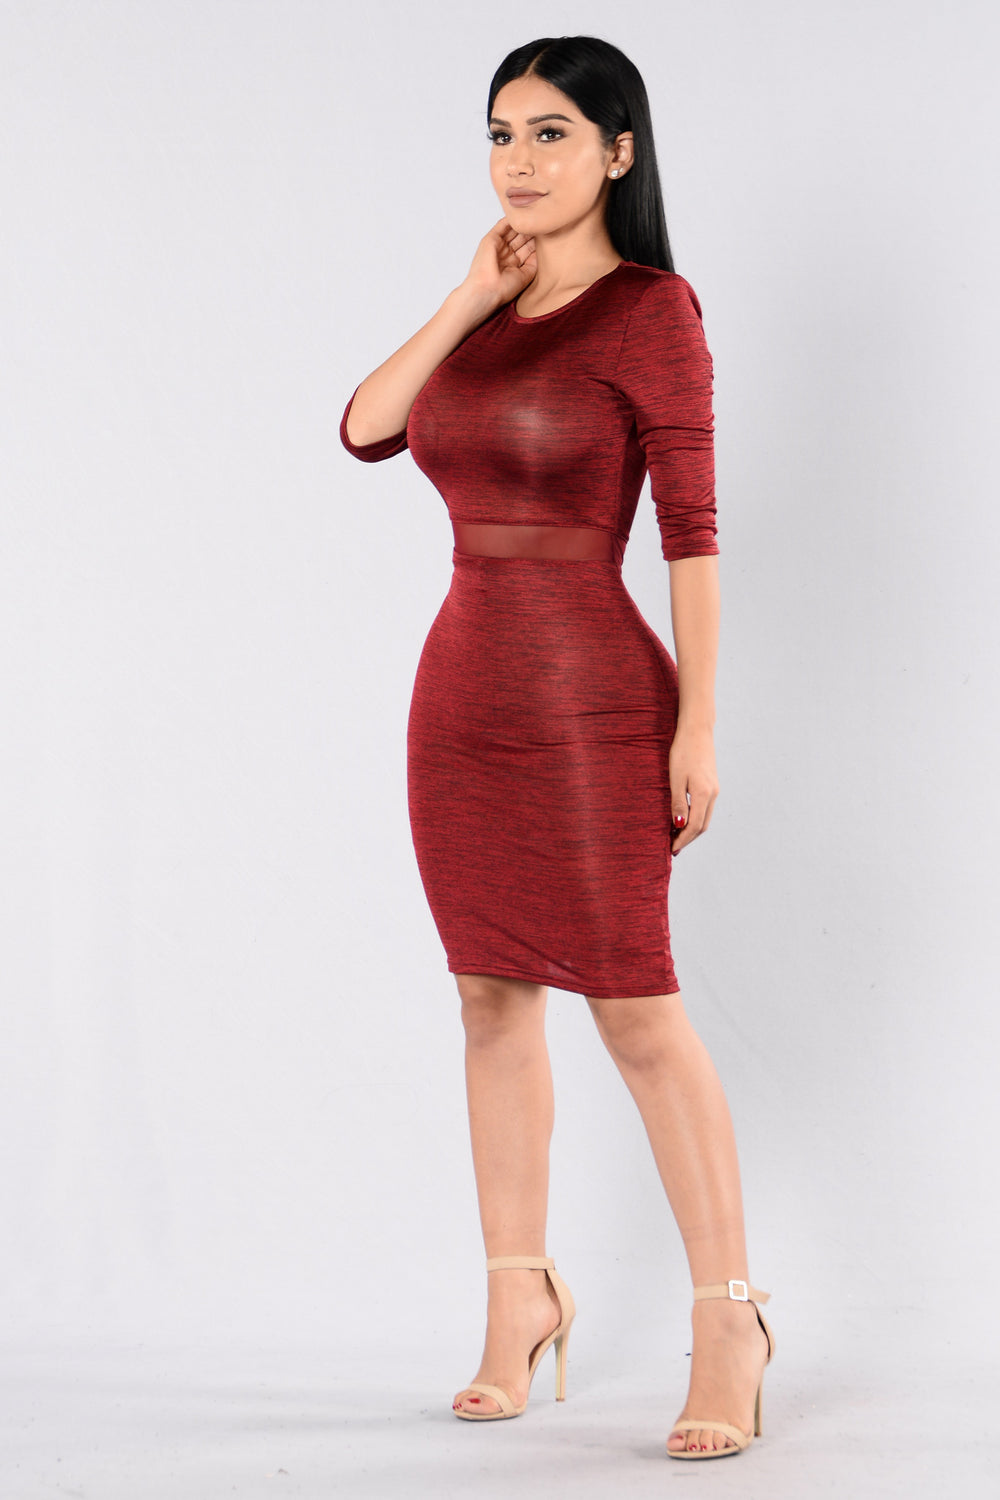 Mighty Women Dress - Burgundy